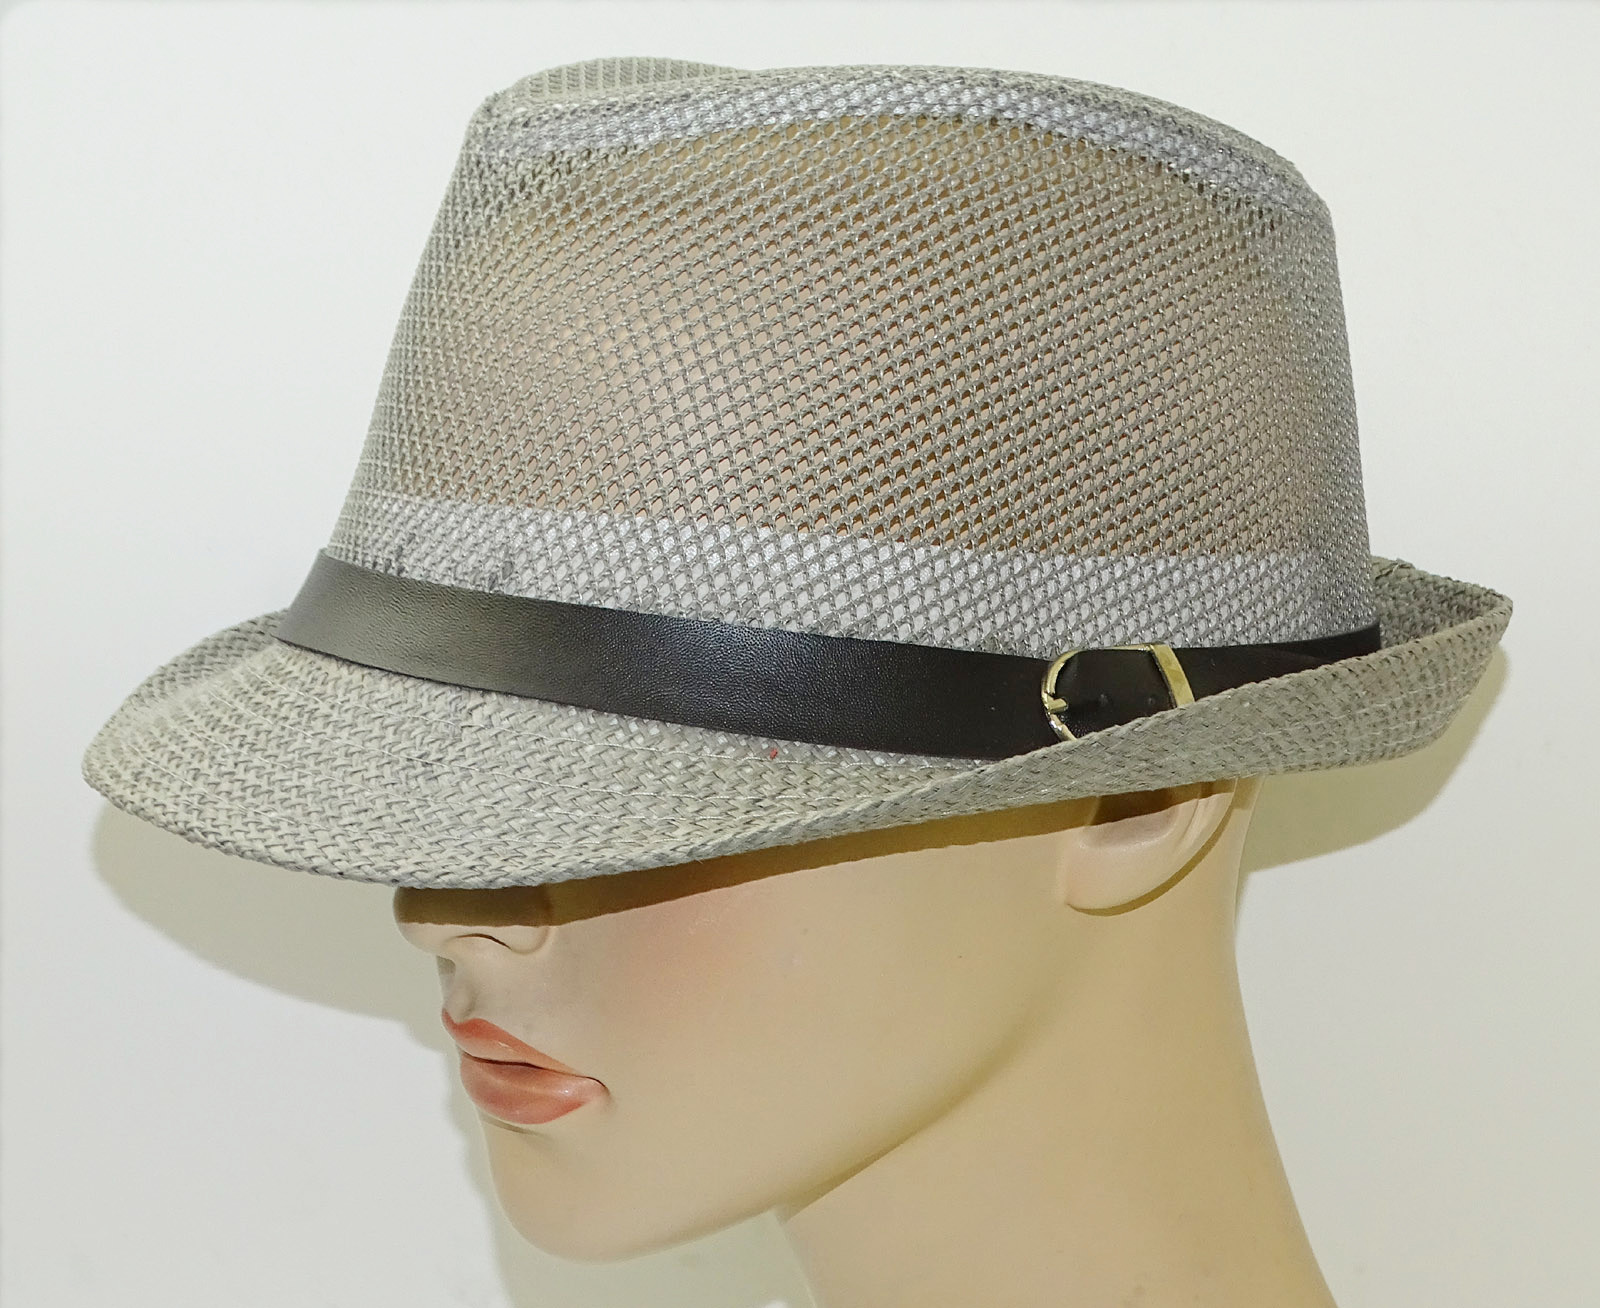 Shop for Ladies Hats on sale at Jaynes Style. Unbeatable prices and great selection on Women's Straw, Fedora, Cowboy & Sun Hats.